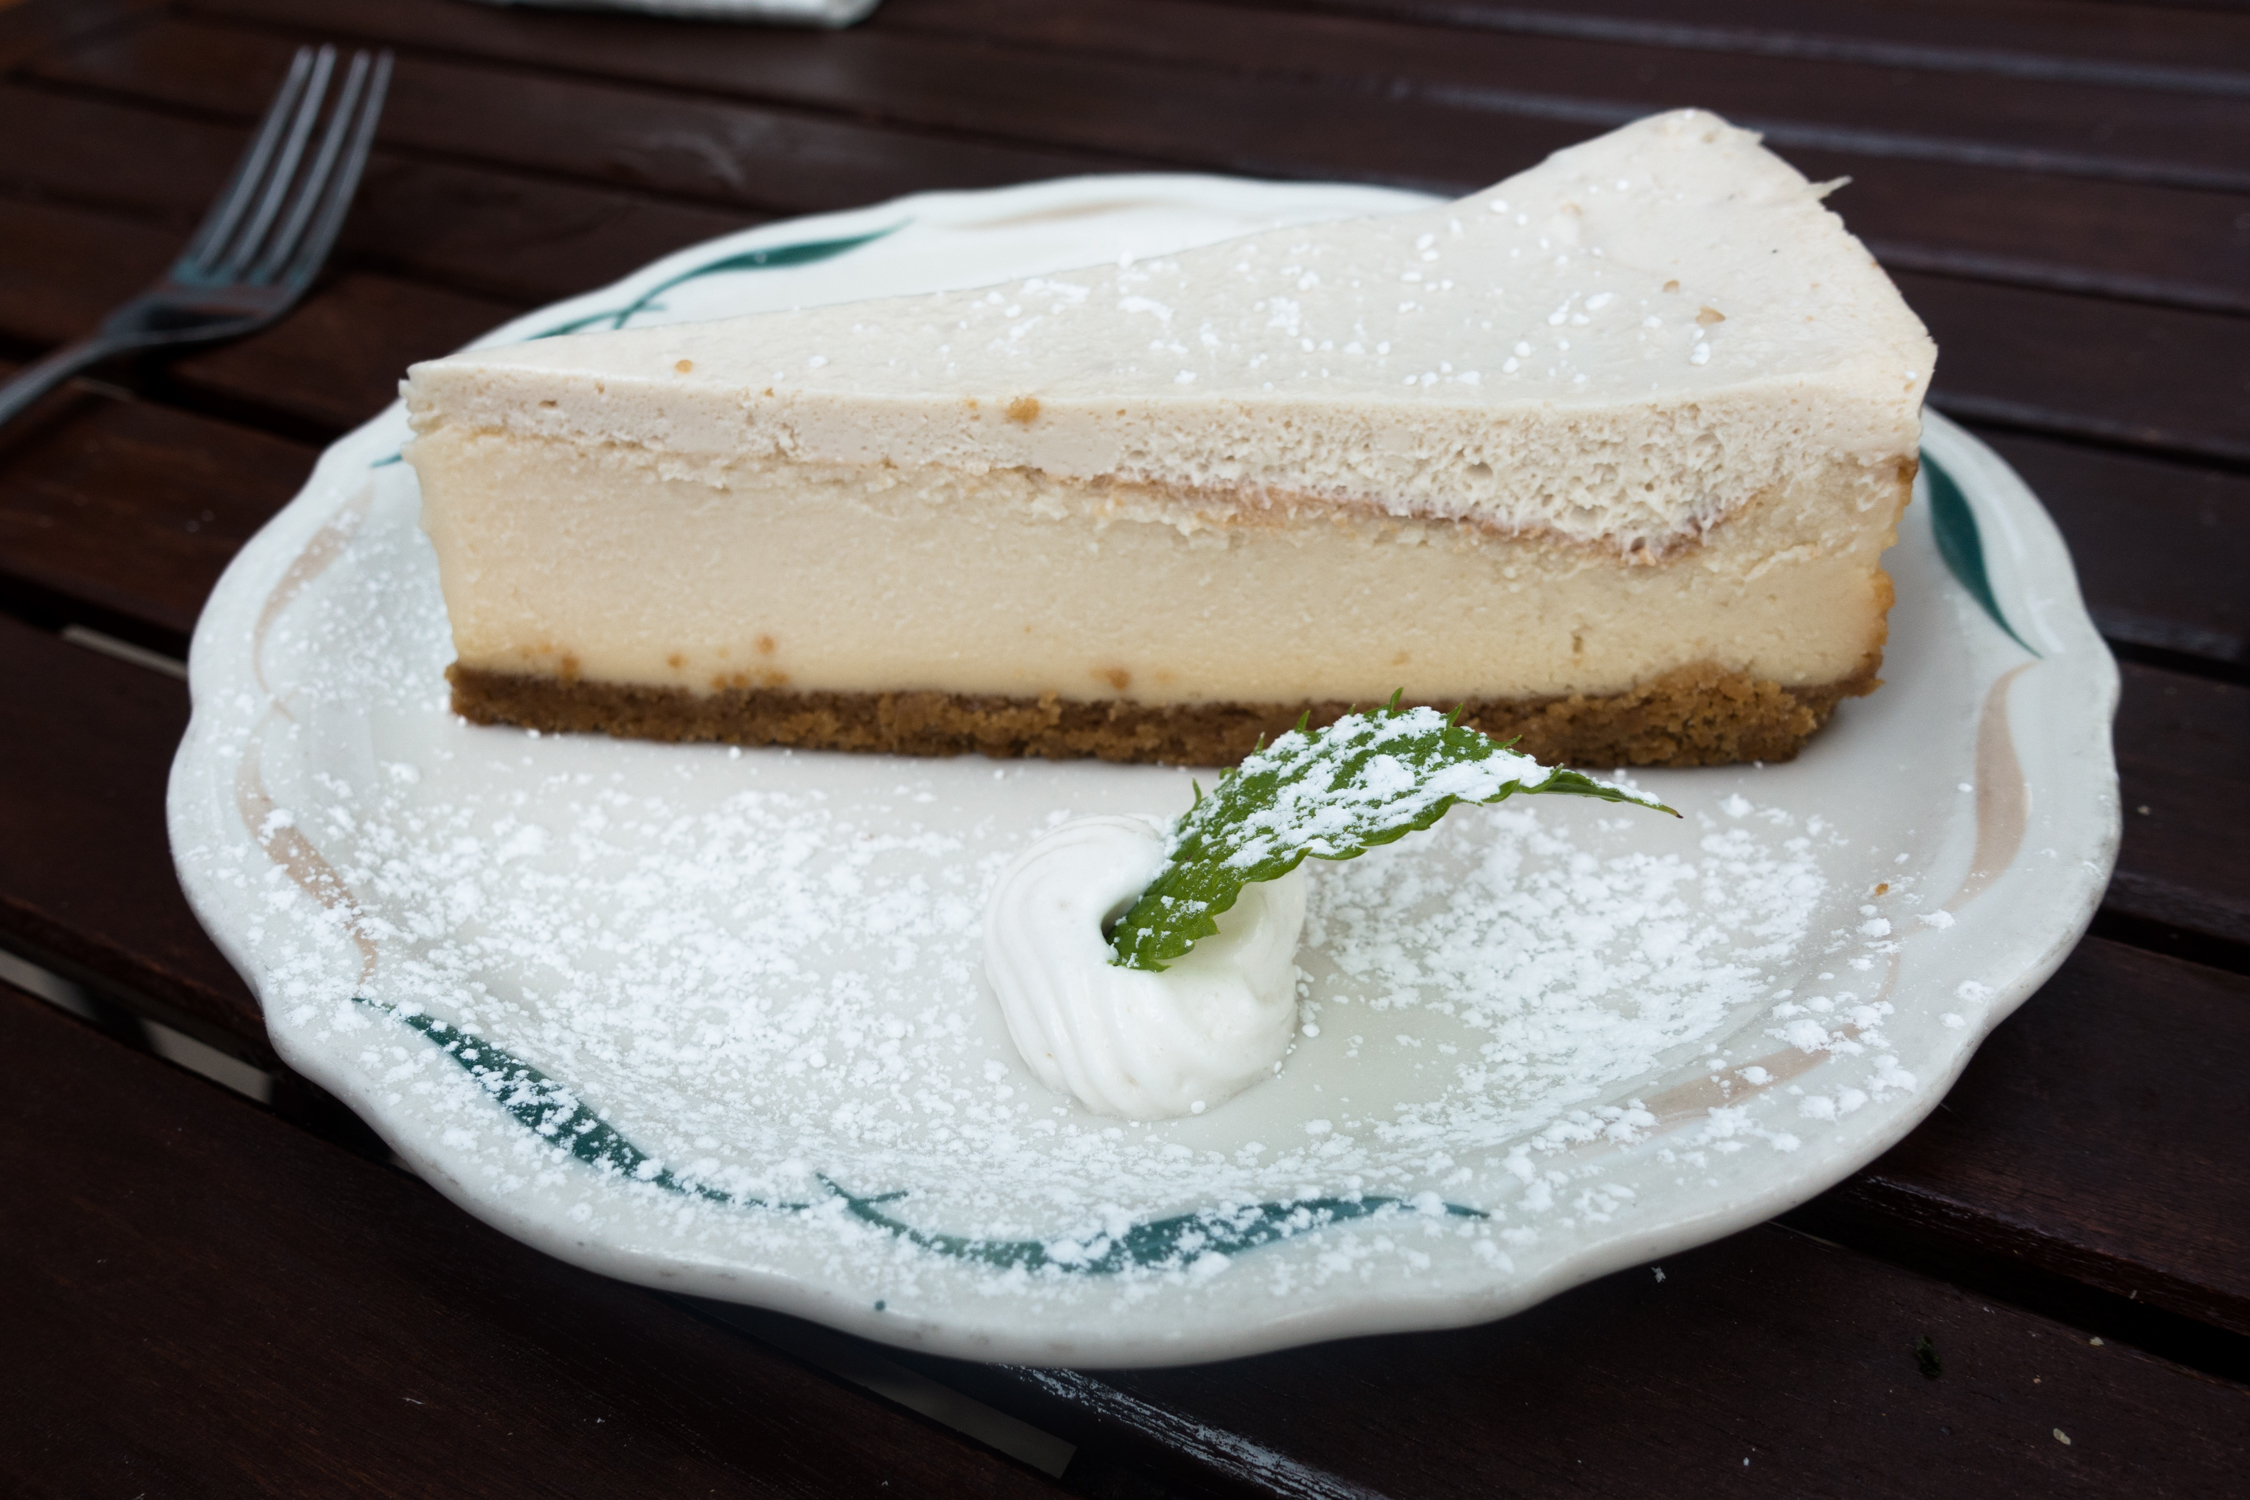 Vegan Cheesecake from The Green Owl Cafe located in Madison, Wisconsin. #vegan #travel #Madison #Wisconsin